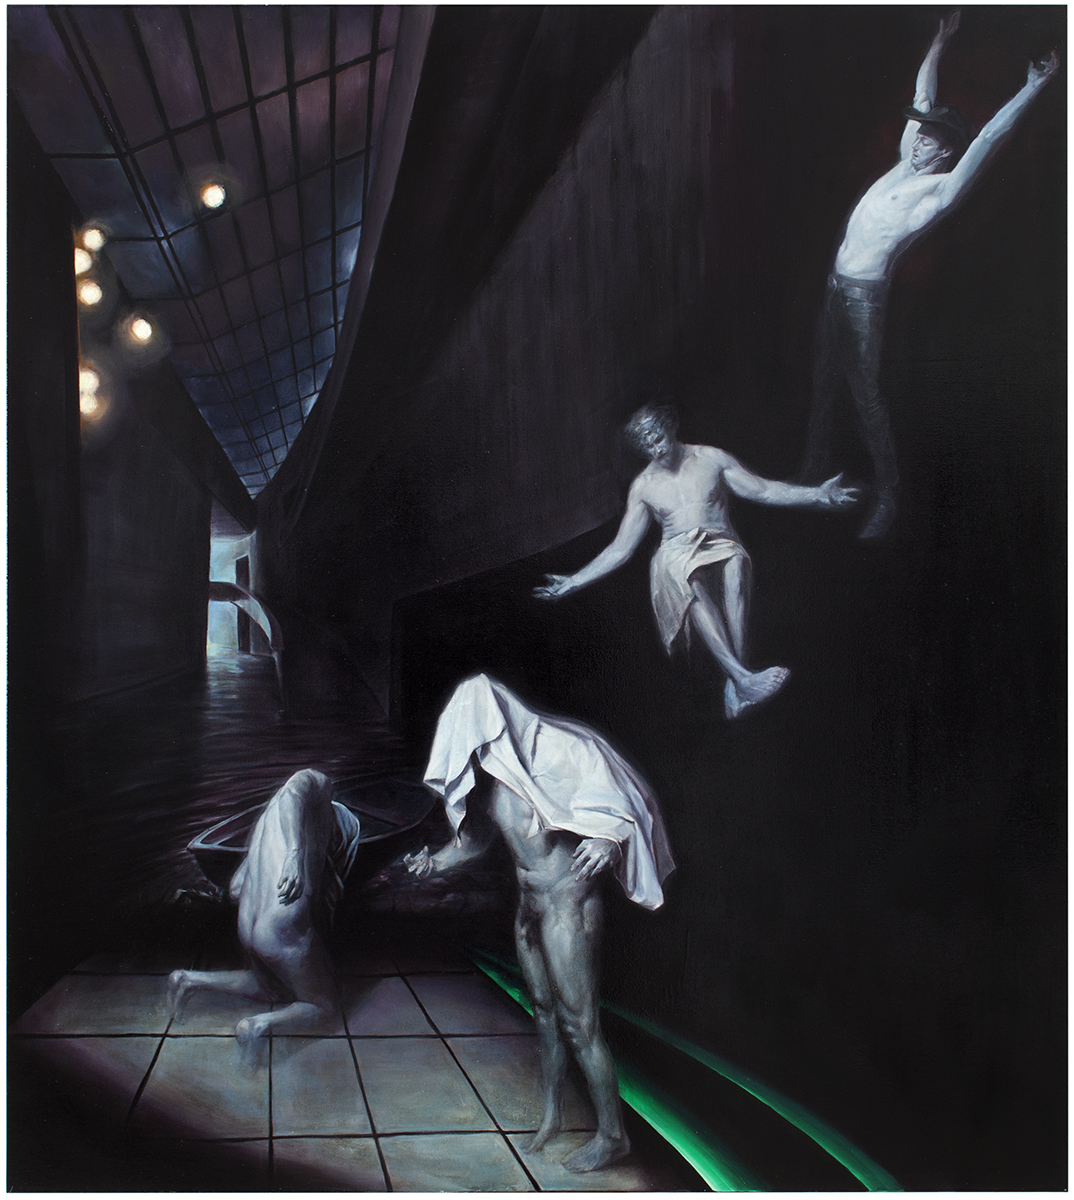 Ghosts, 2014, oil on canvas, 200 x 180 cm, 9500 €